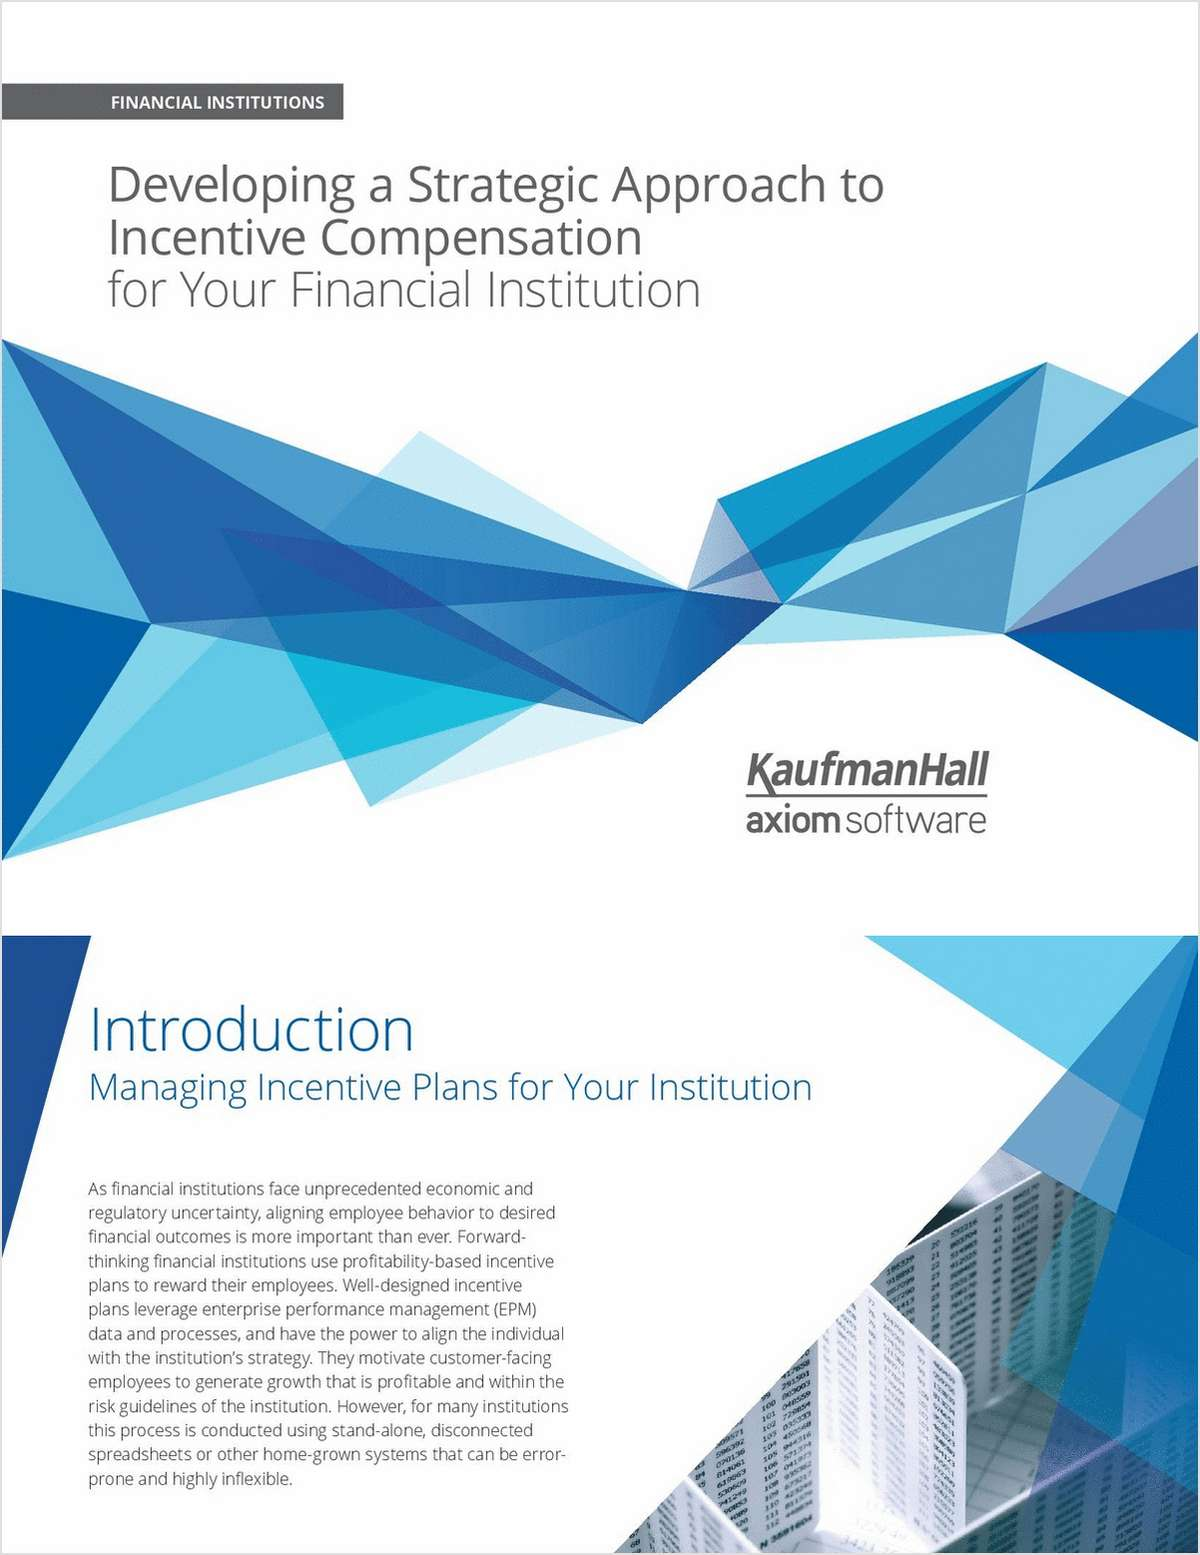 How to Develop a Strategic Approach to Incentive Compensation for Your Credit Union